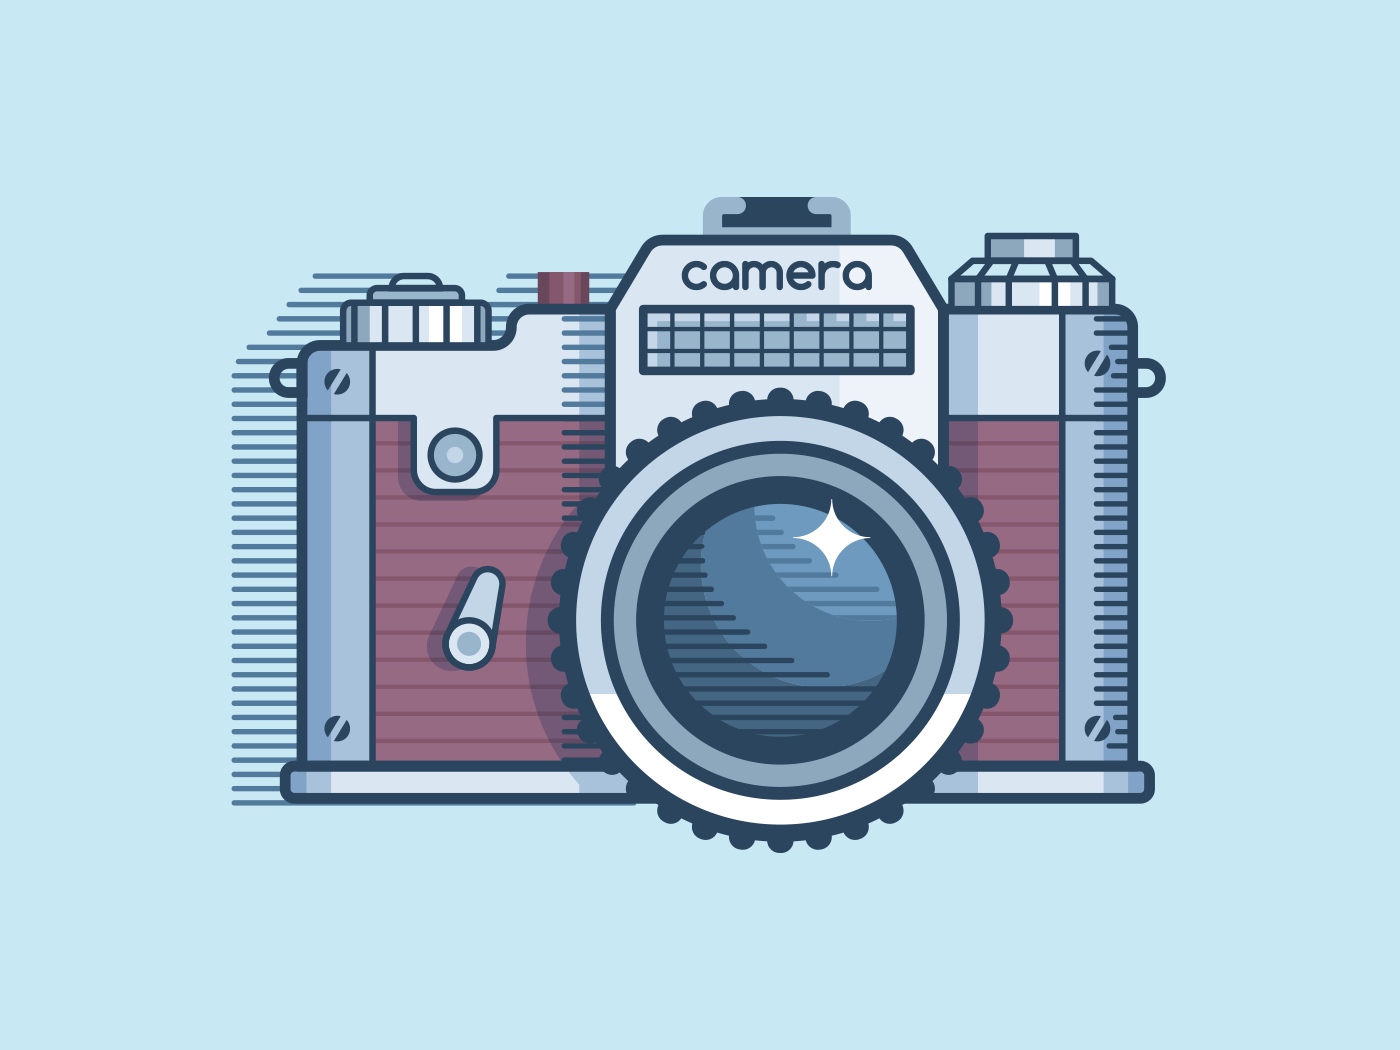 Camera retro design line vector illustration